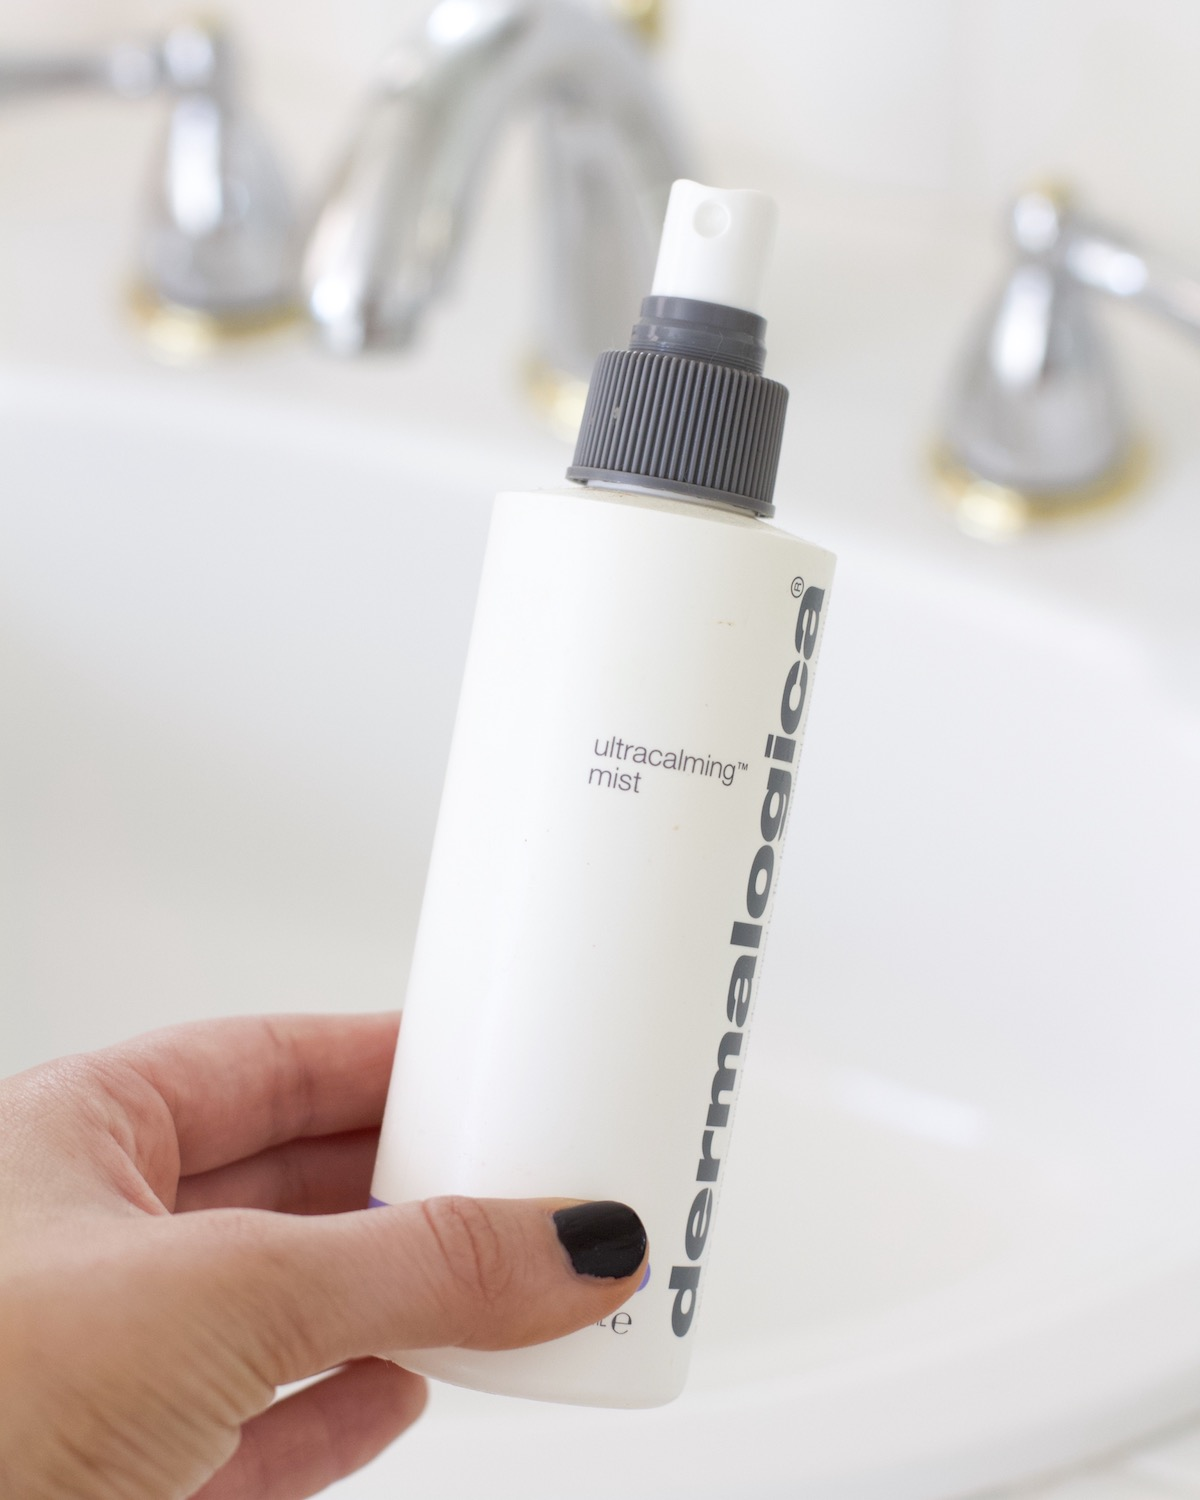 dermalogica ultracalming mist review